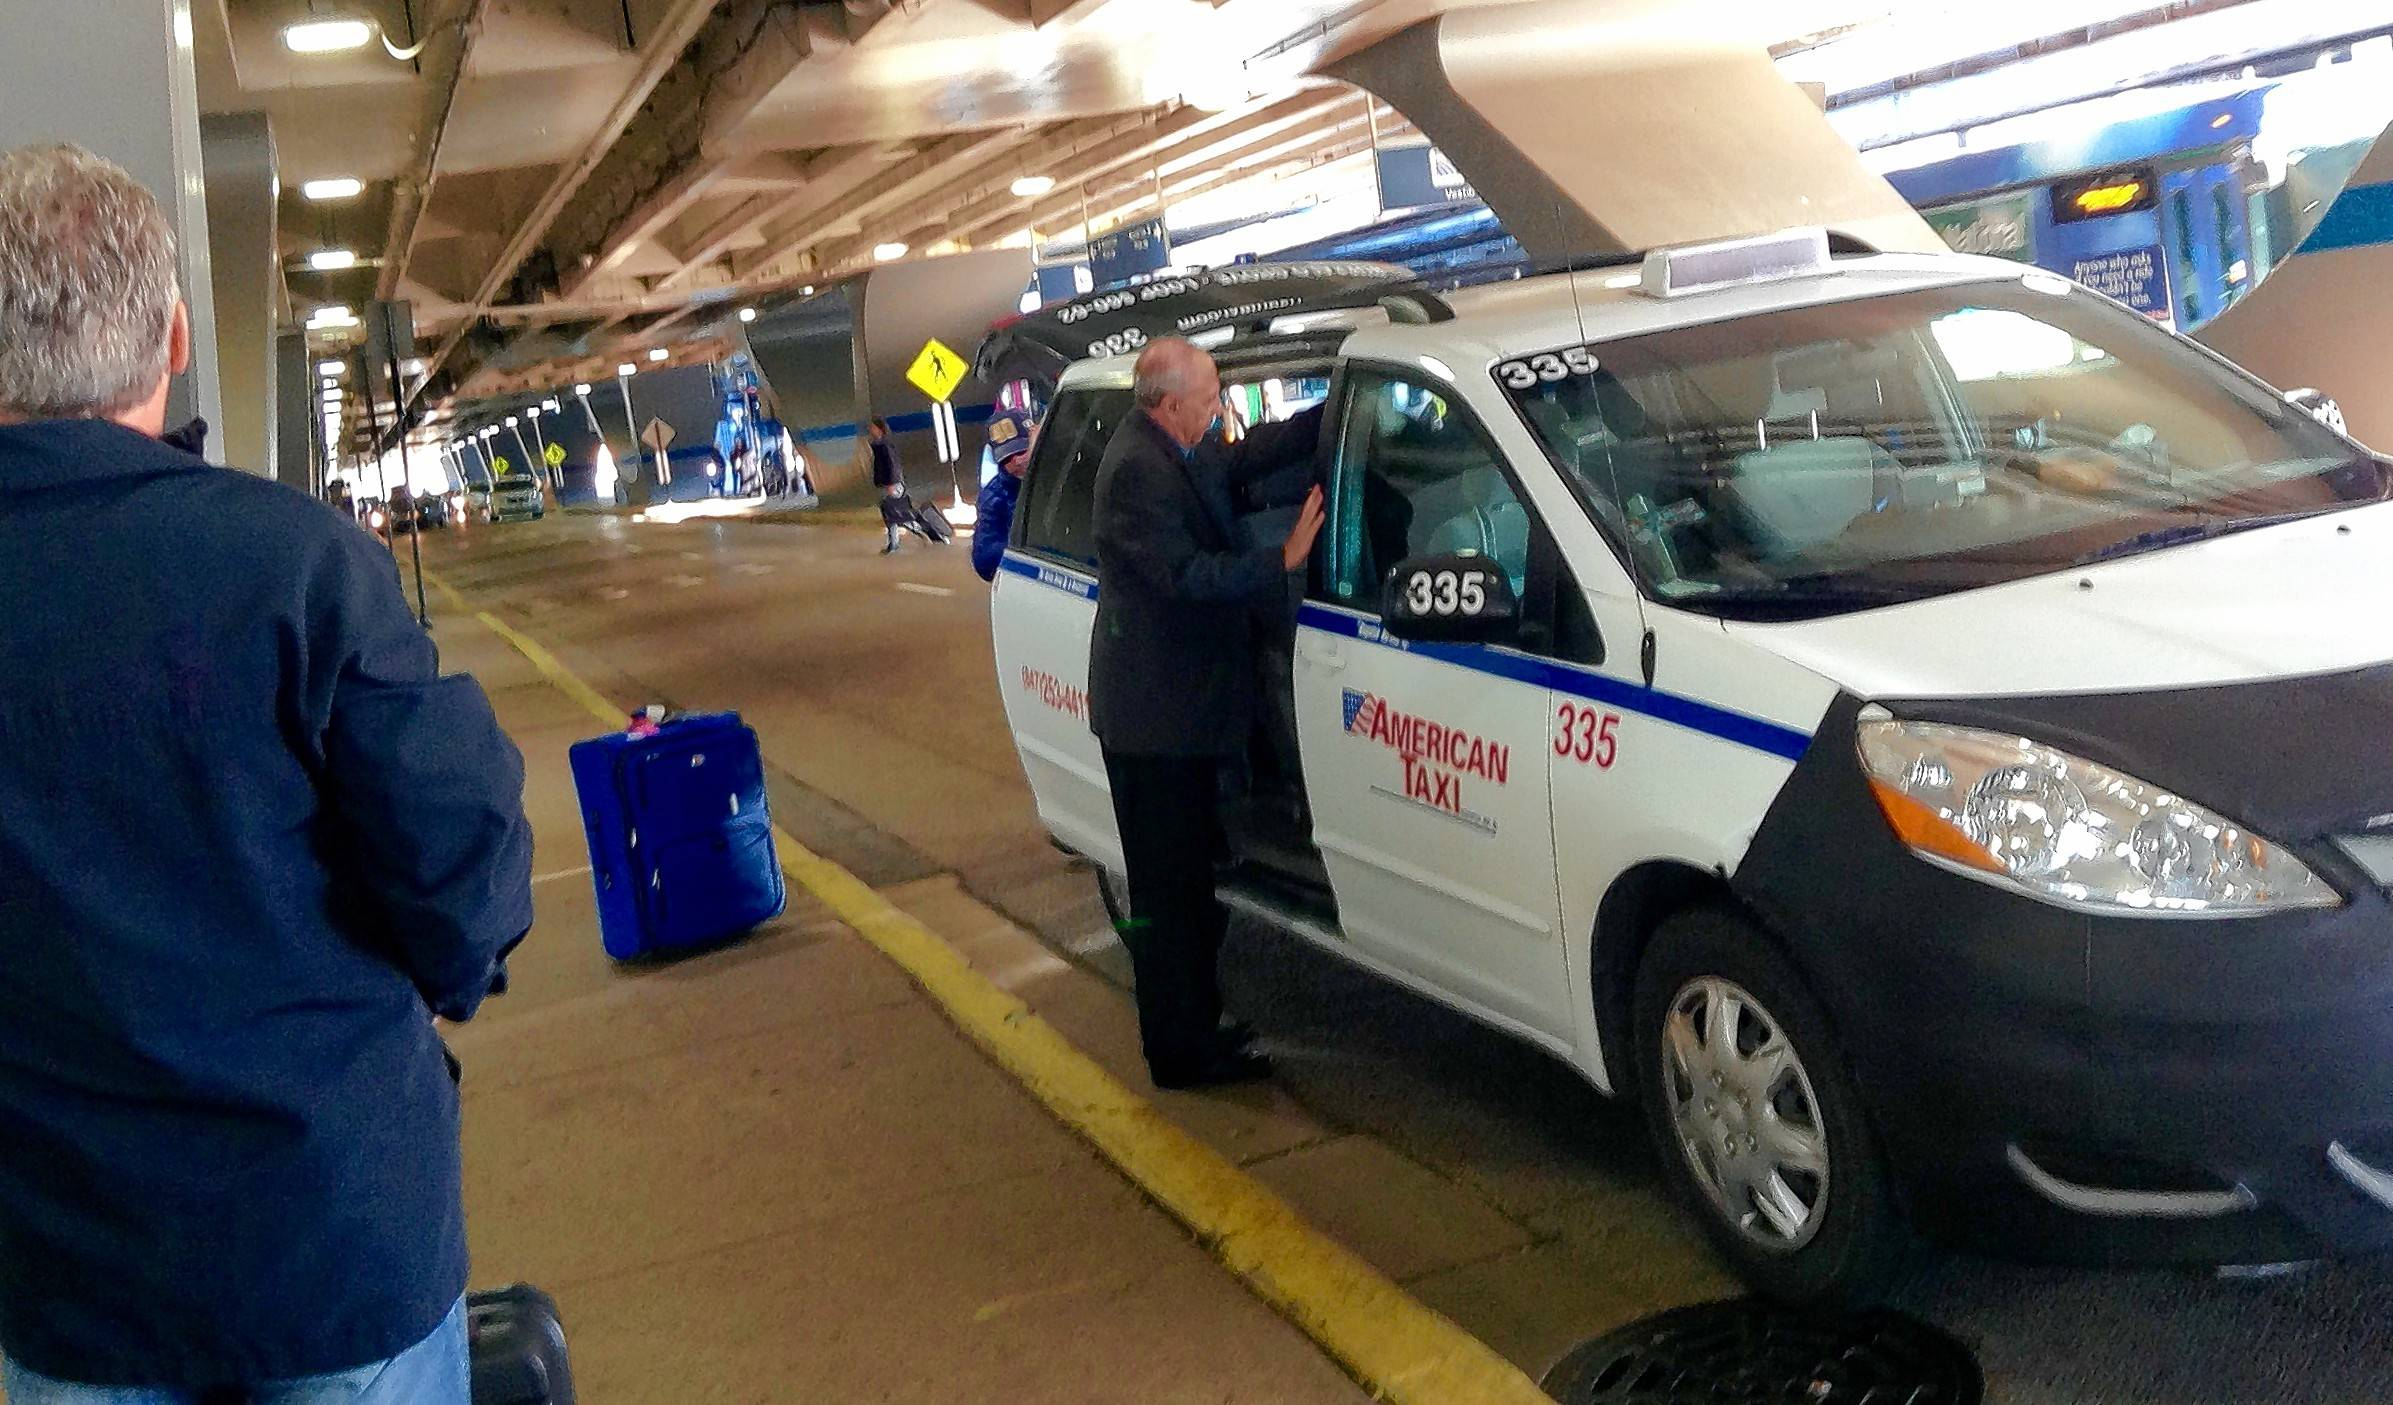 Uber-high stakes: Taxi/ride-share wars pulling up at O'Hare